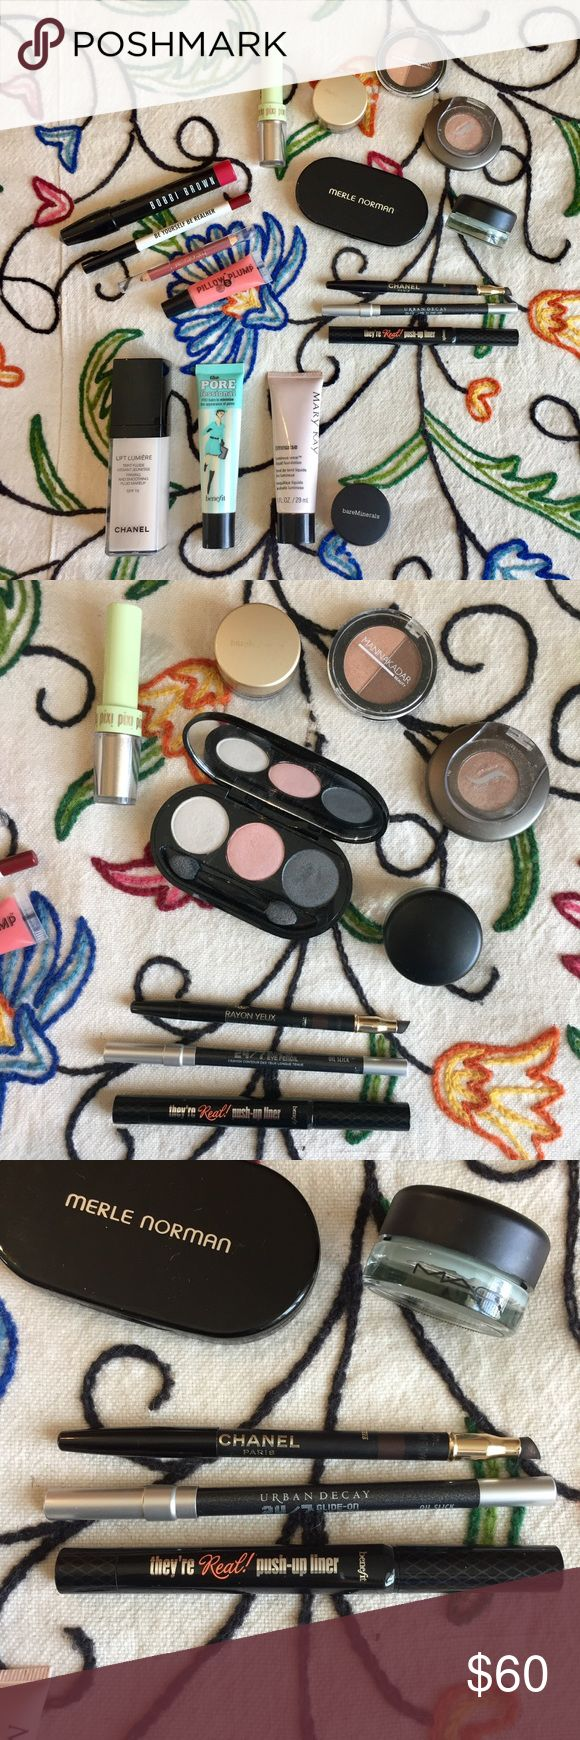 High End Makeup Bundle 💋💋💋💋 Bobbi Brown, Urban Decay, Chanel, Benefit, Mac, Bare Minerals and more! All in great condition 🙏 The Elizabeth Arden and Bobbi Brown lip pencils can be shaved for sanitation along with the Chanel, Benefit and Urban Decay eyeliners. Pore Professional has barely been used along with the Mary Kay luminous-wear foundation. The Merle Norman eyeshadow has been lightly swatched. Plenty of Bare Minerals bronzer left. Chanel foundation is about half full. Mac paint…